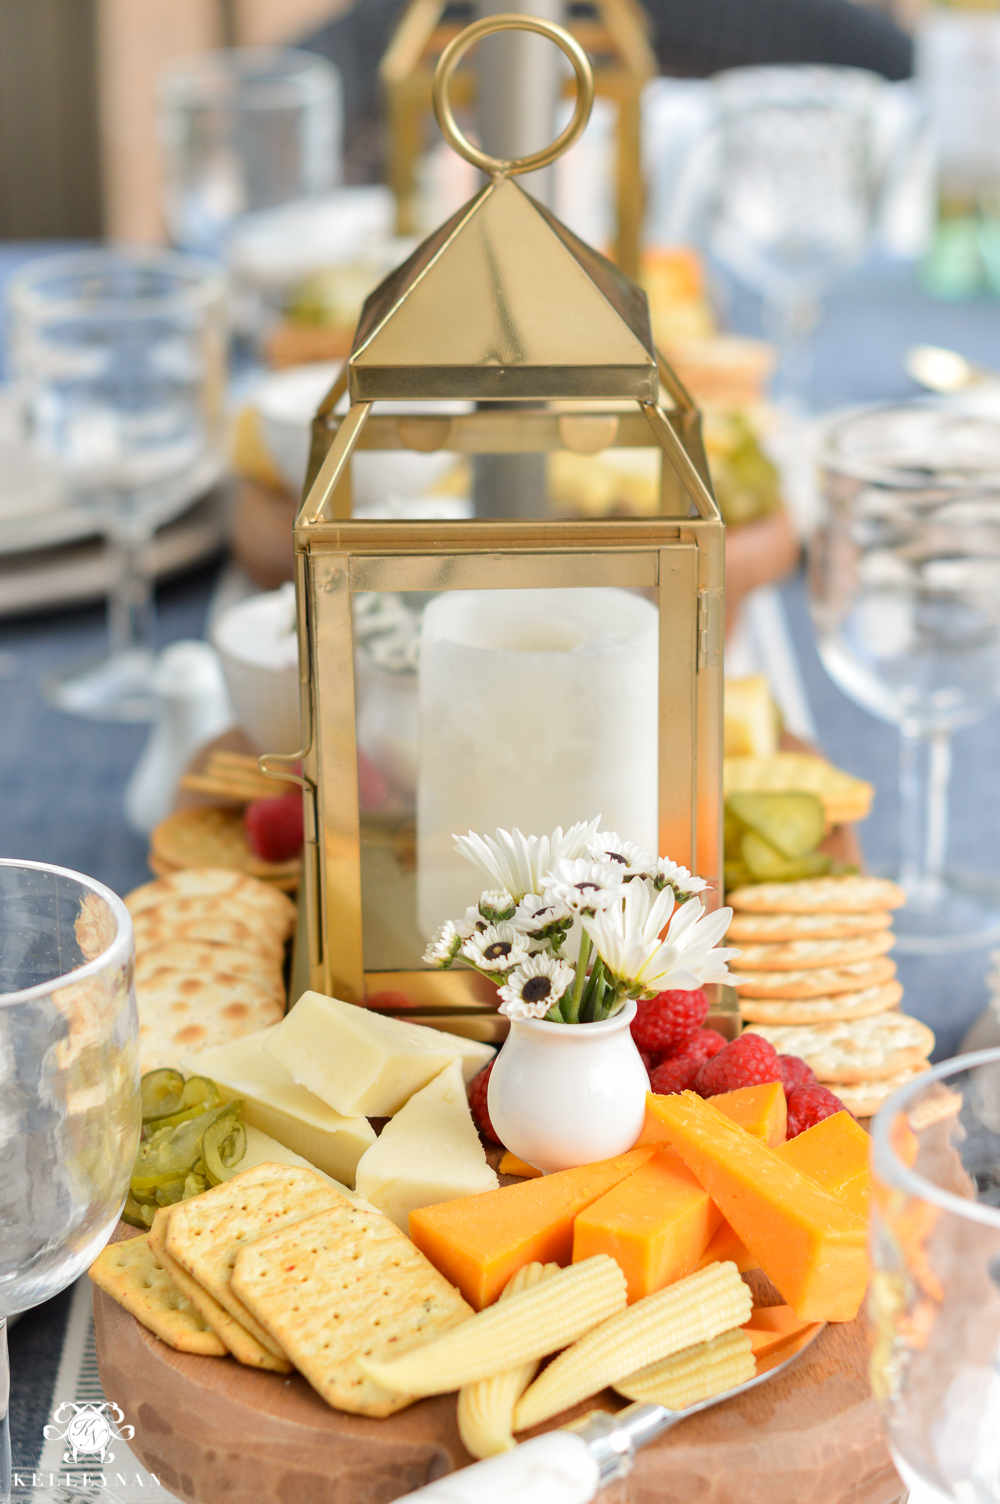 Outdoor Entertaining and Table Ideas with Cheese board appetizer centerpieces-how to build a cheese board